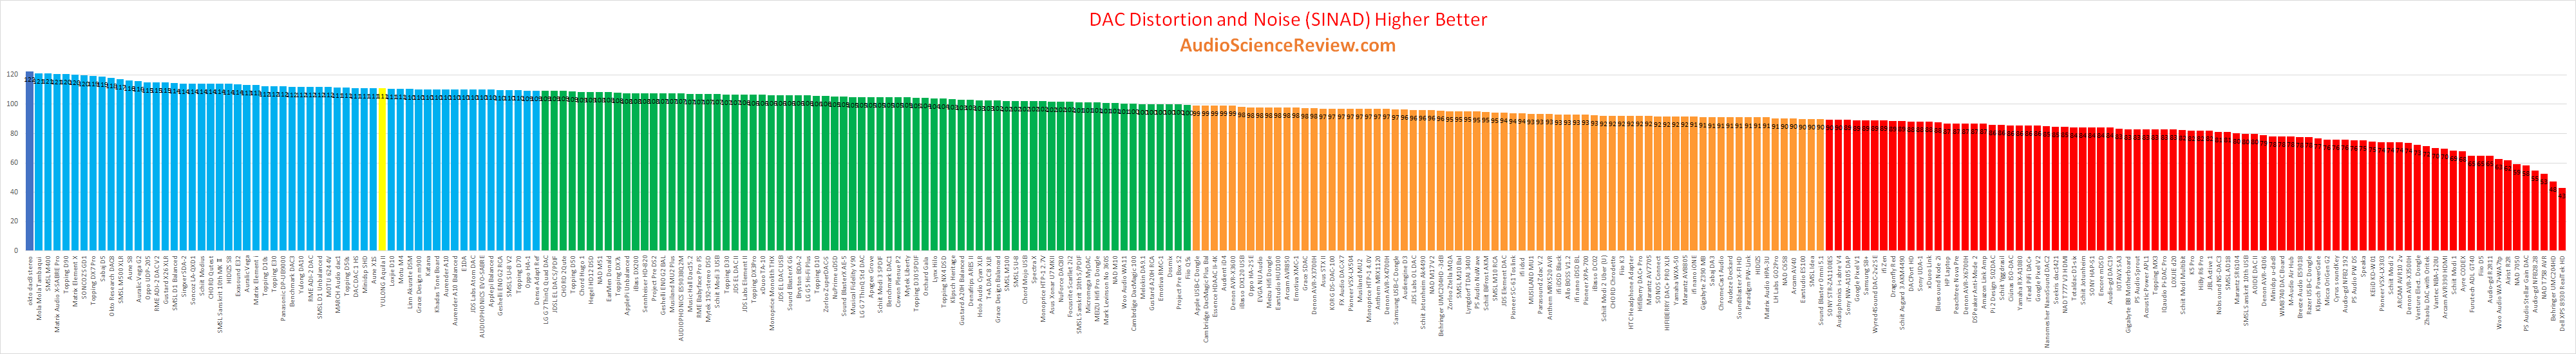 Best USB DAC Balanced with Headphone Amp Review.png